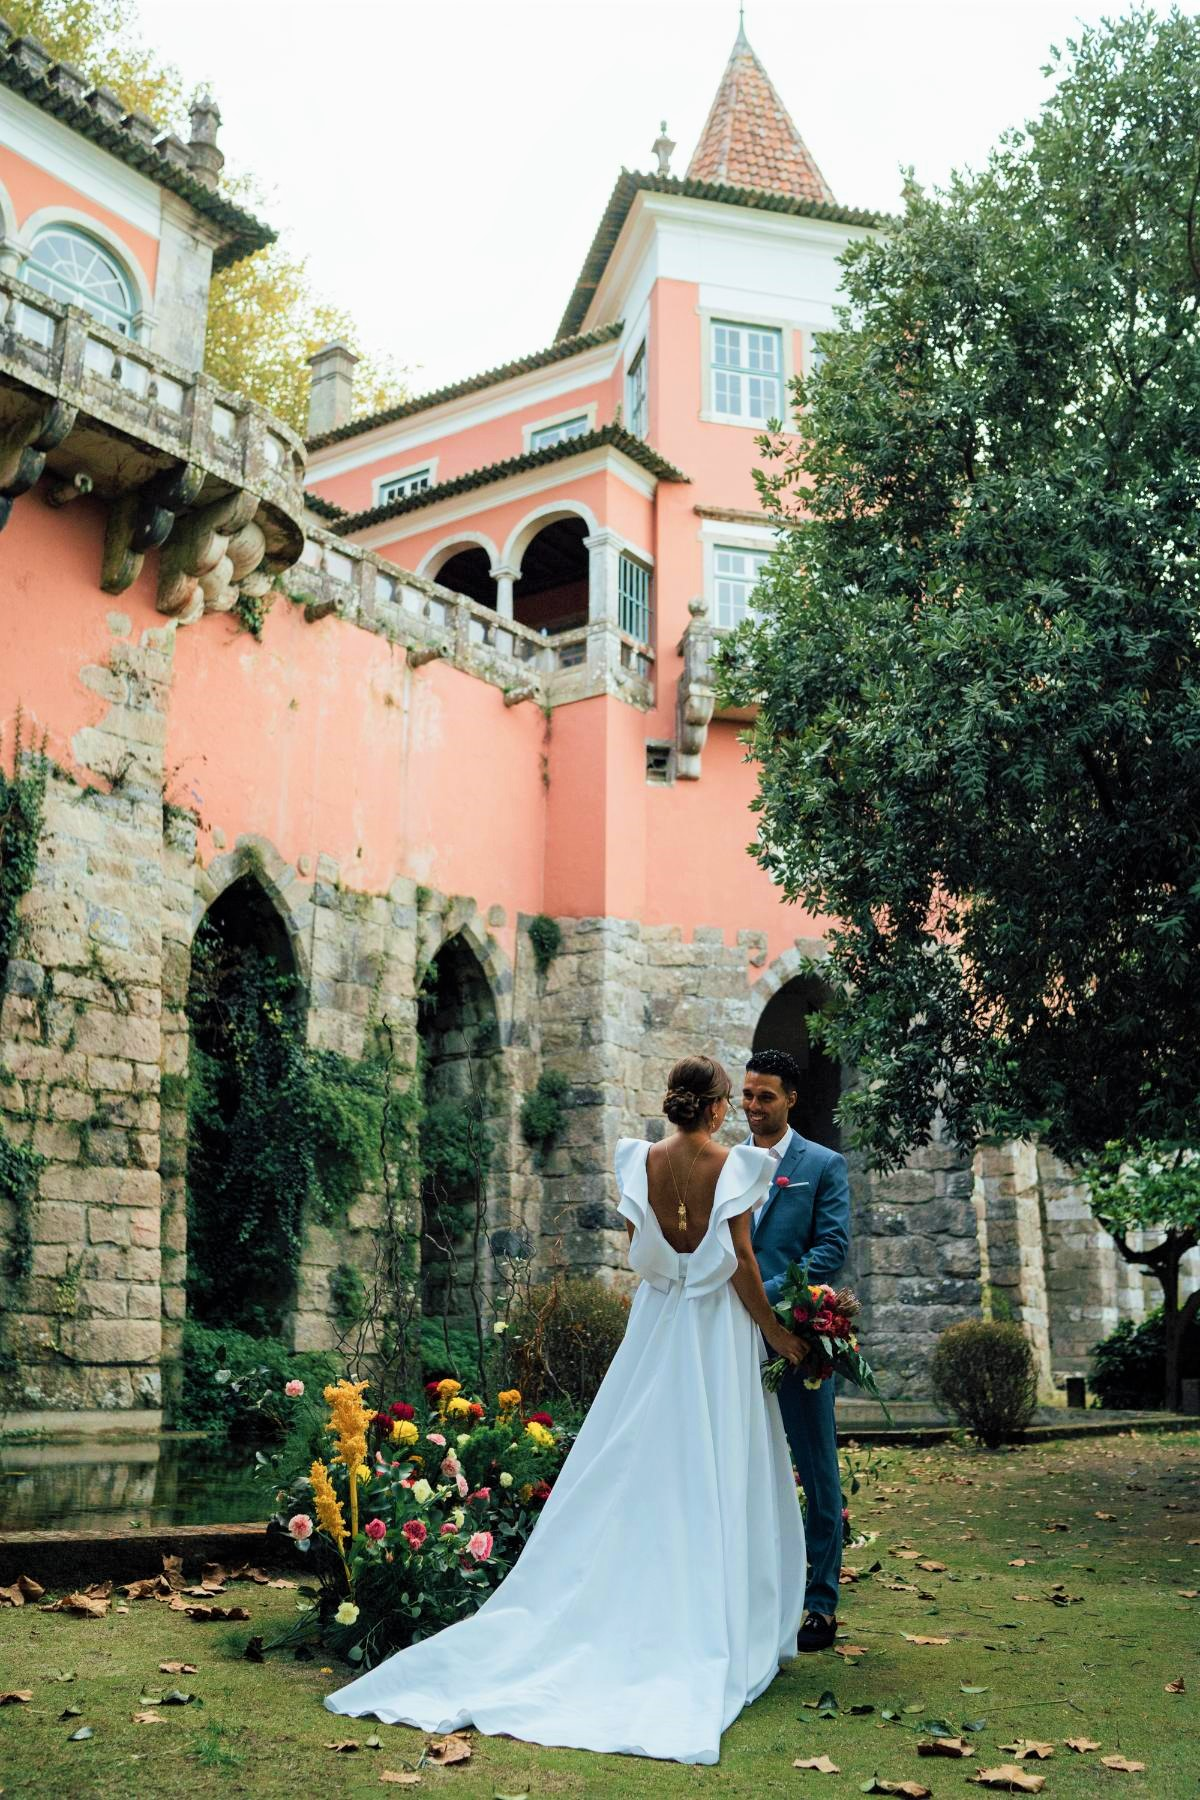 A magia de Sintra, num mini wedding europeu